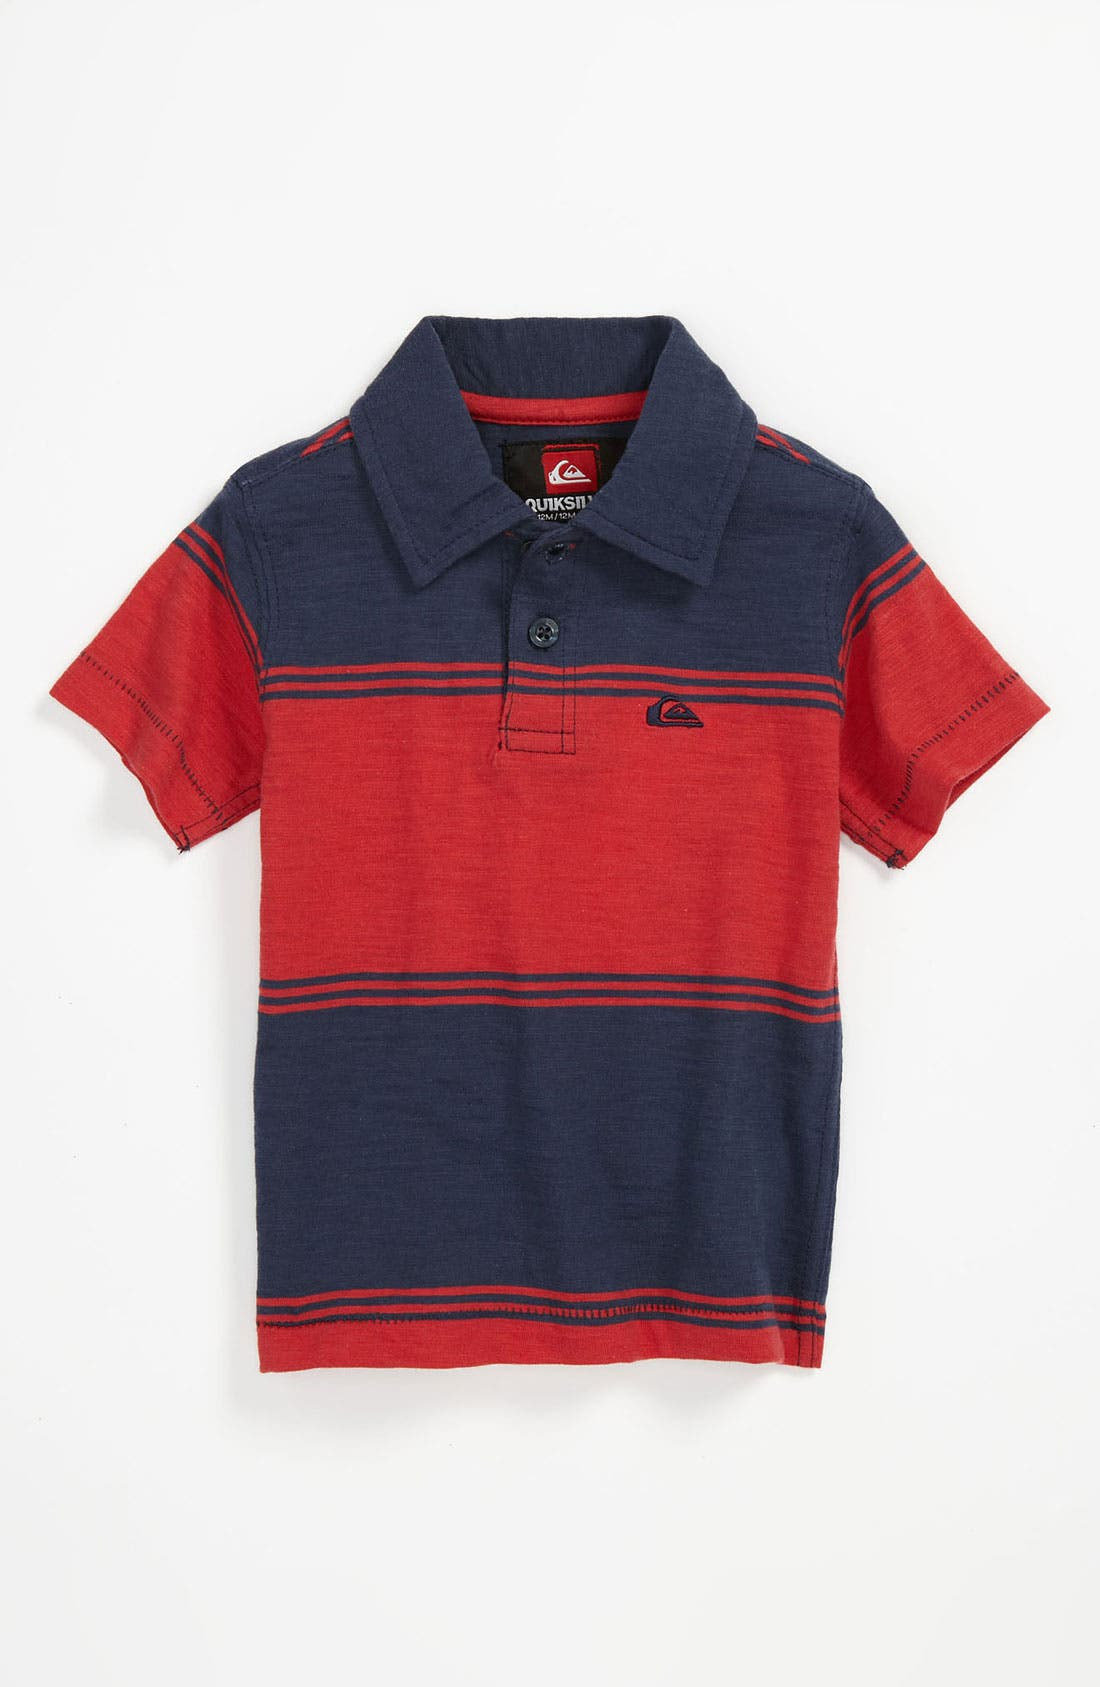 Main Image - Quiksilver 'Big Cheese' Stripe Polo (Baby)